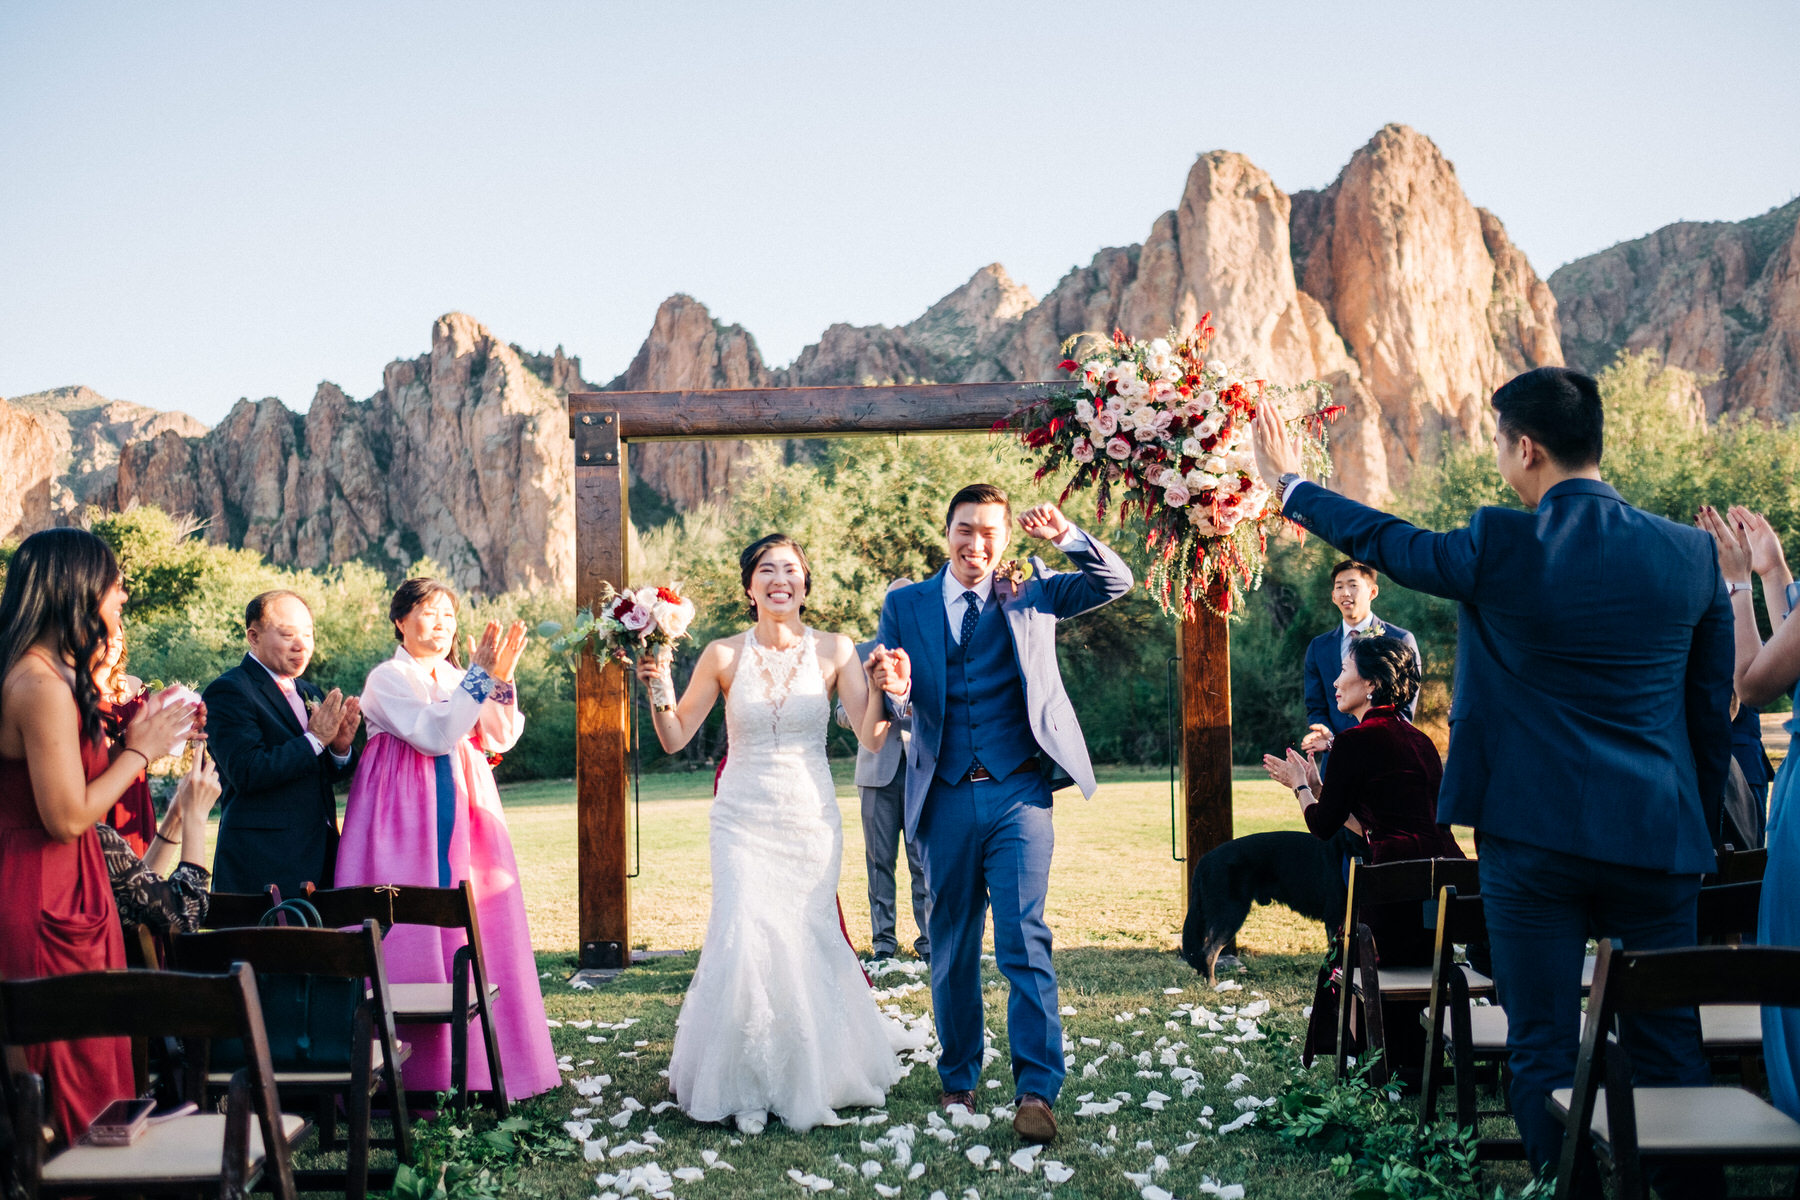 Bride and Groom walking down aisle after ceremony at Saguaro Lake Guest Ranch wedding